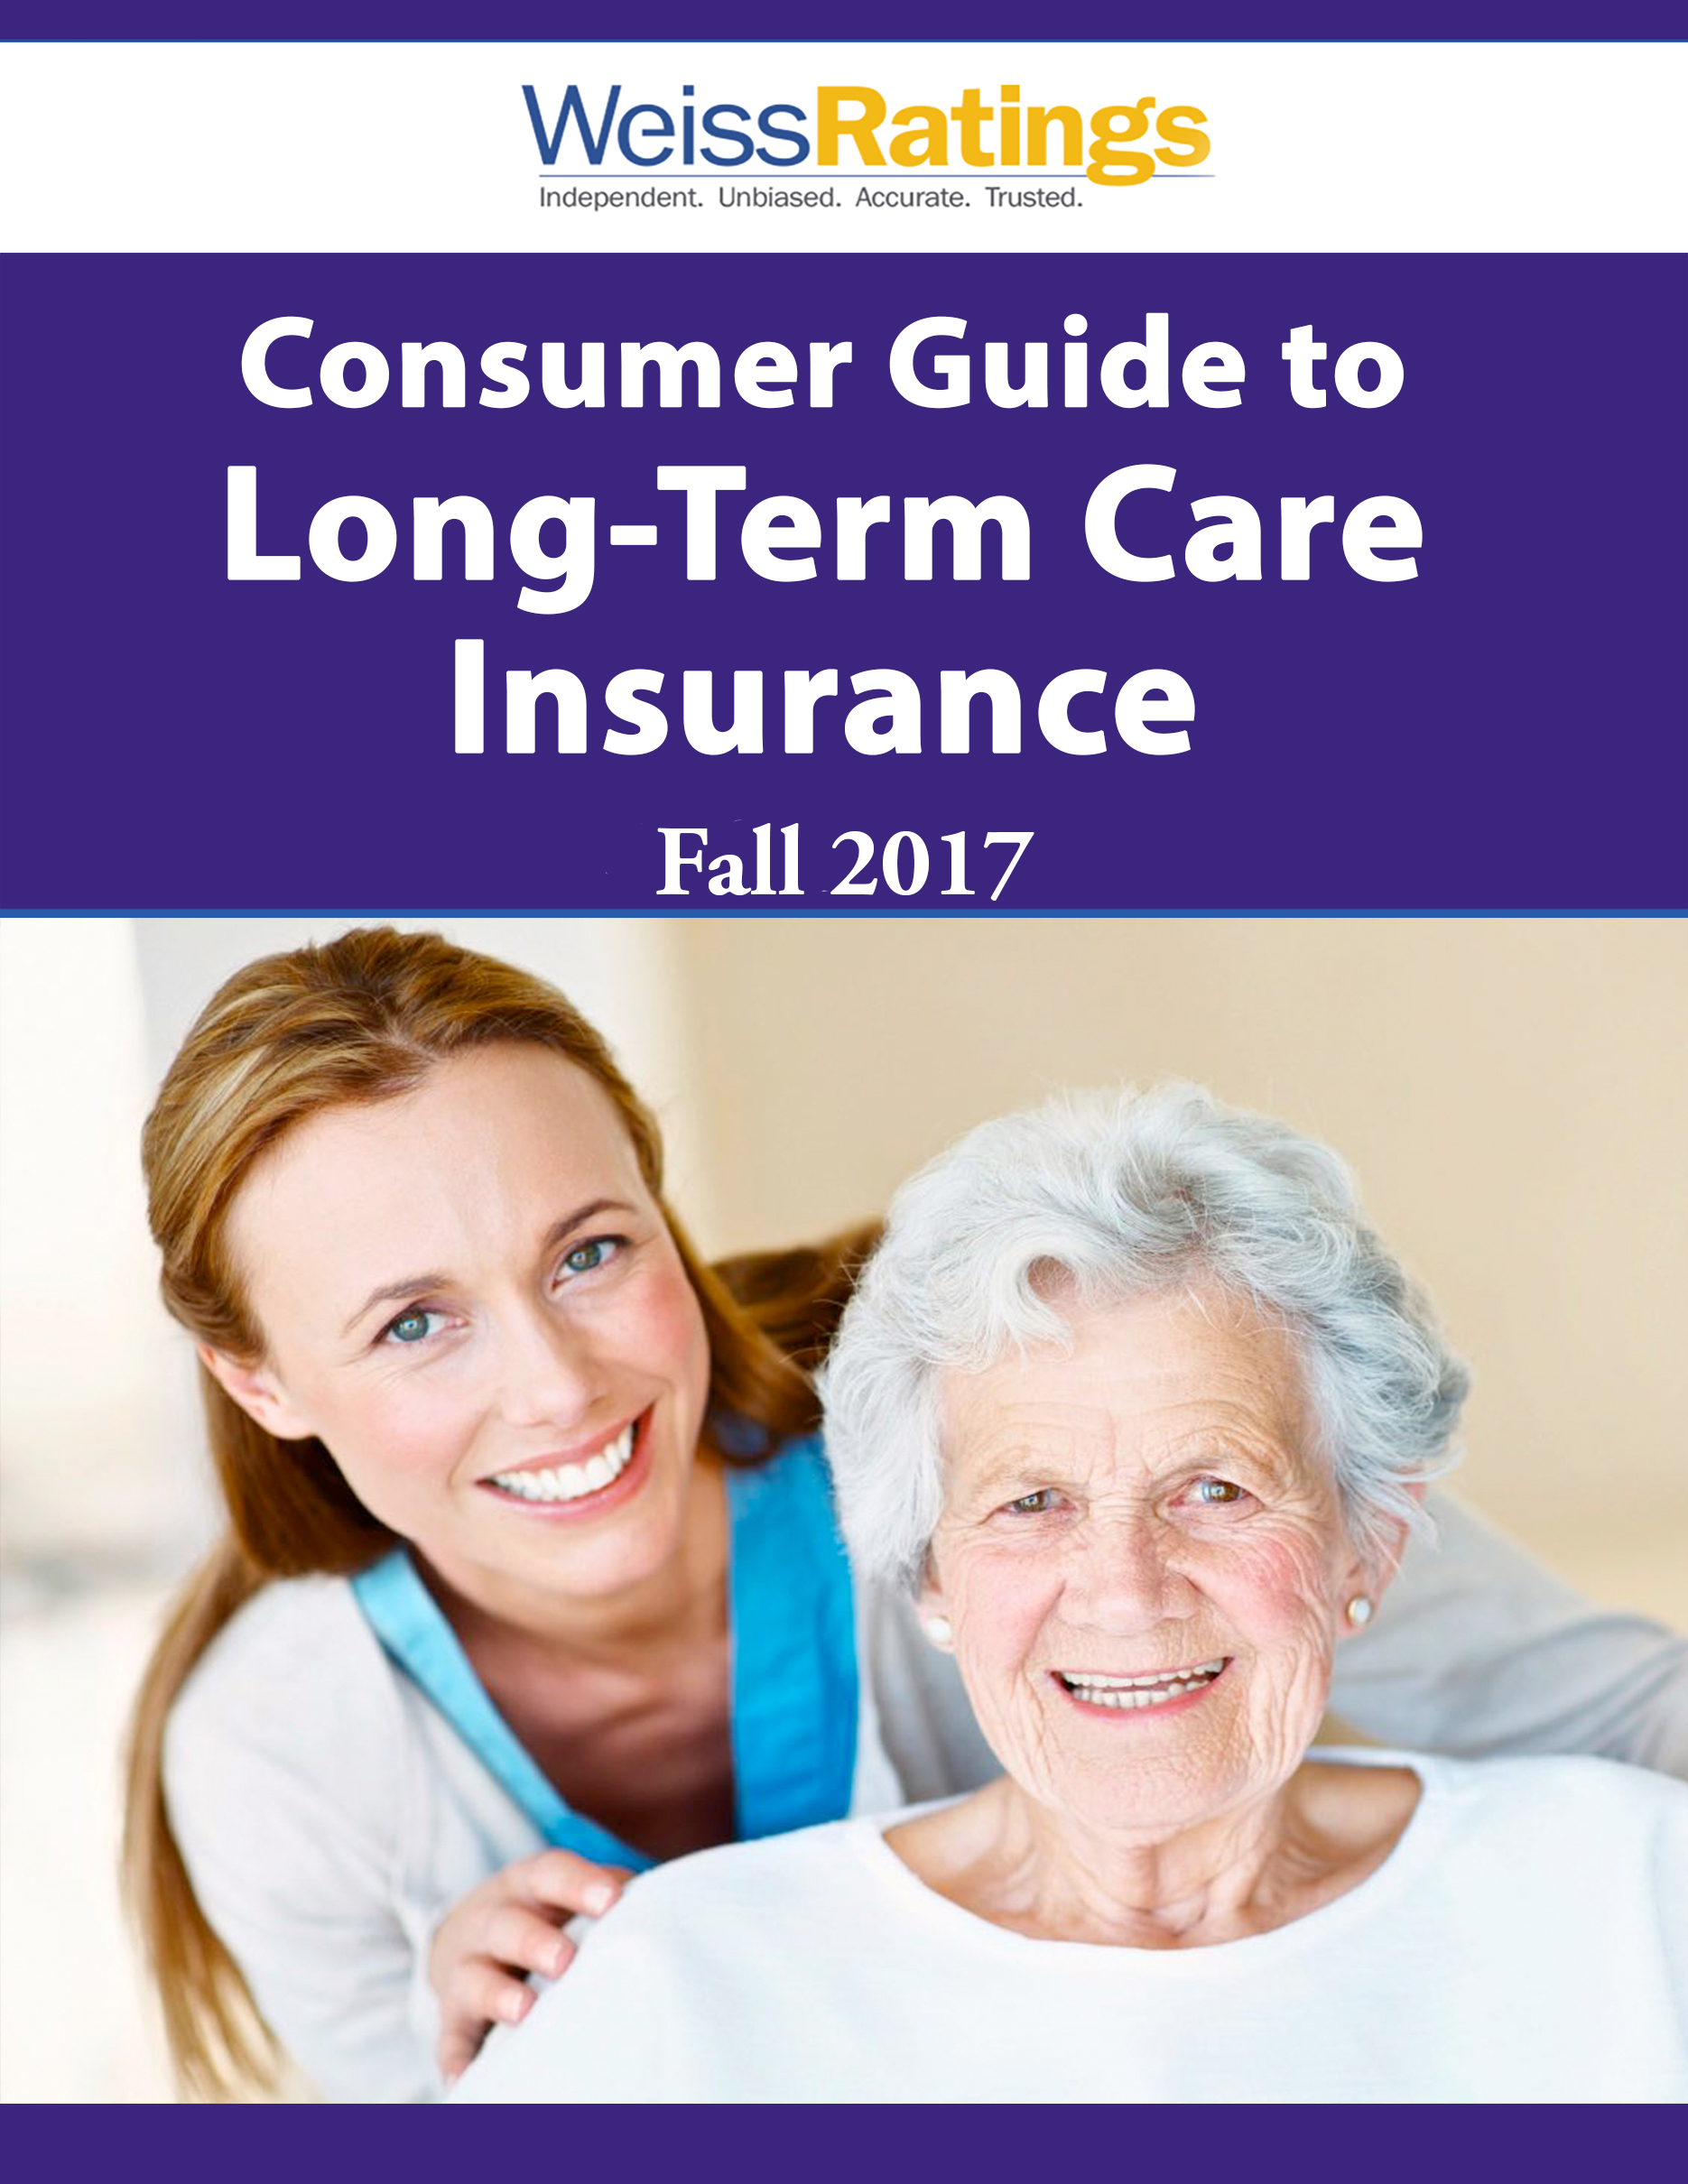 Consumer Guide to Long-Term Care Insurance